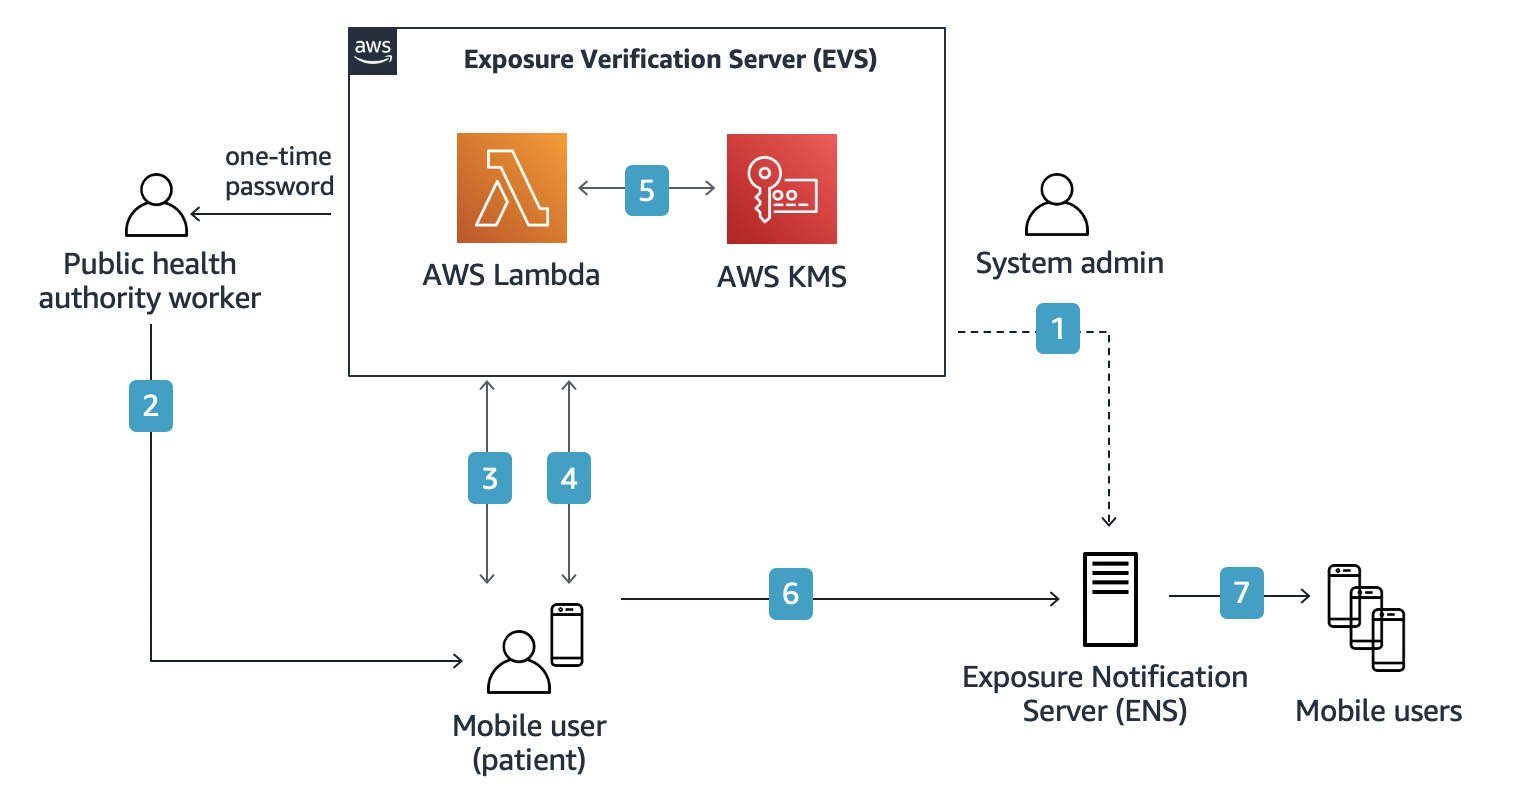 Figure 2: COVID-19 Exposure Notification System with AWS-based EVS